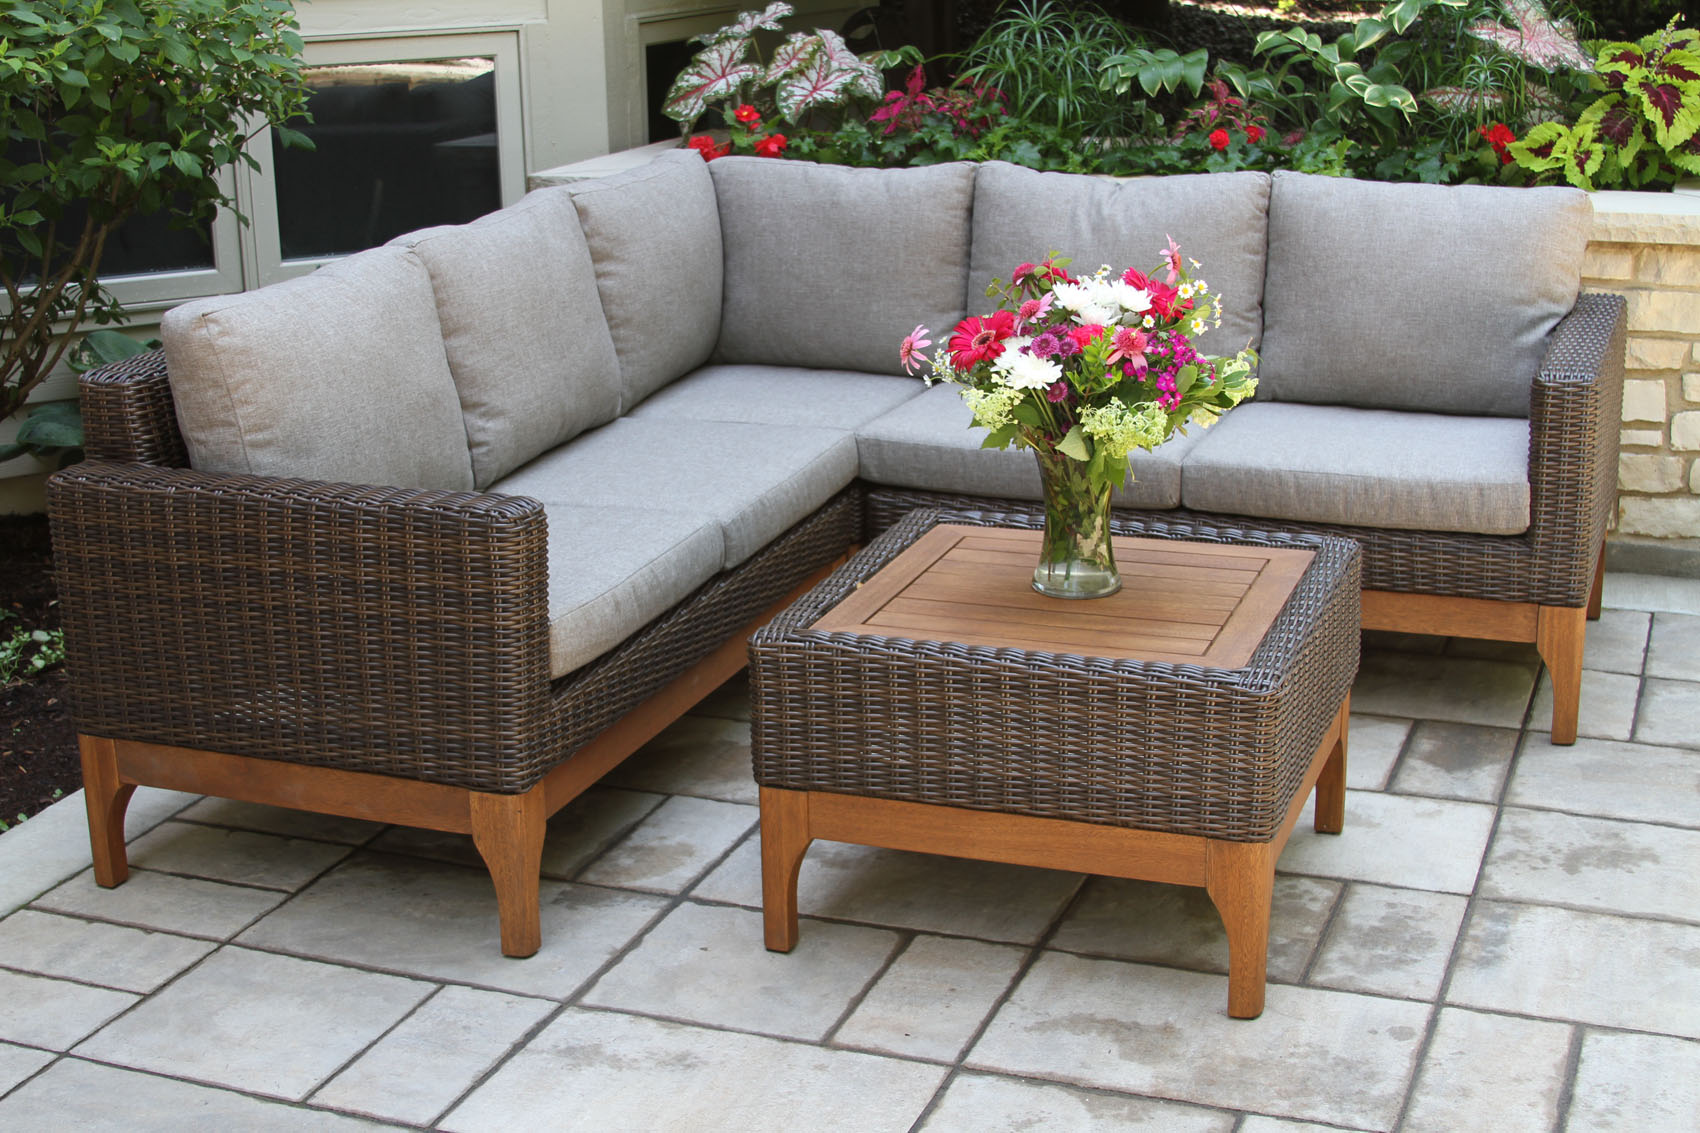 Outstanding Solid Wood Outdoor Patio Furntiure Unemploymentrelief Wooden Chair Designs For Living Room Unemploymentrelieforg